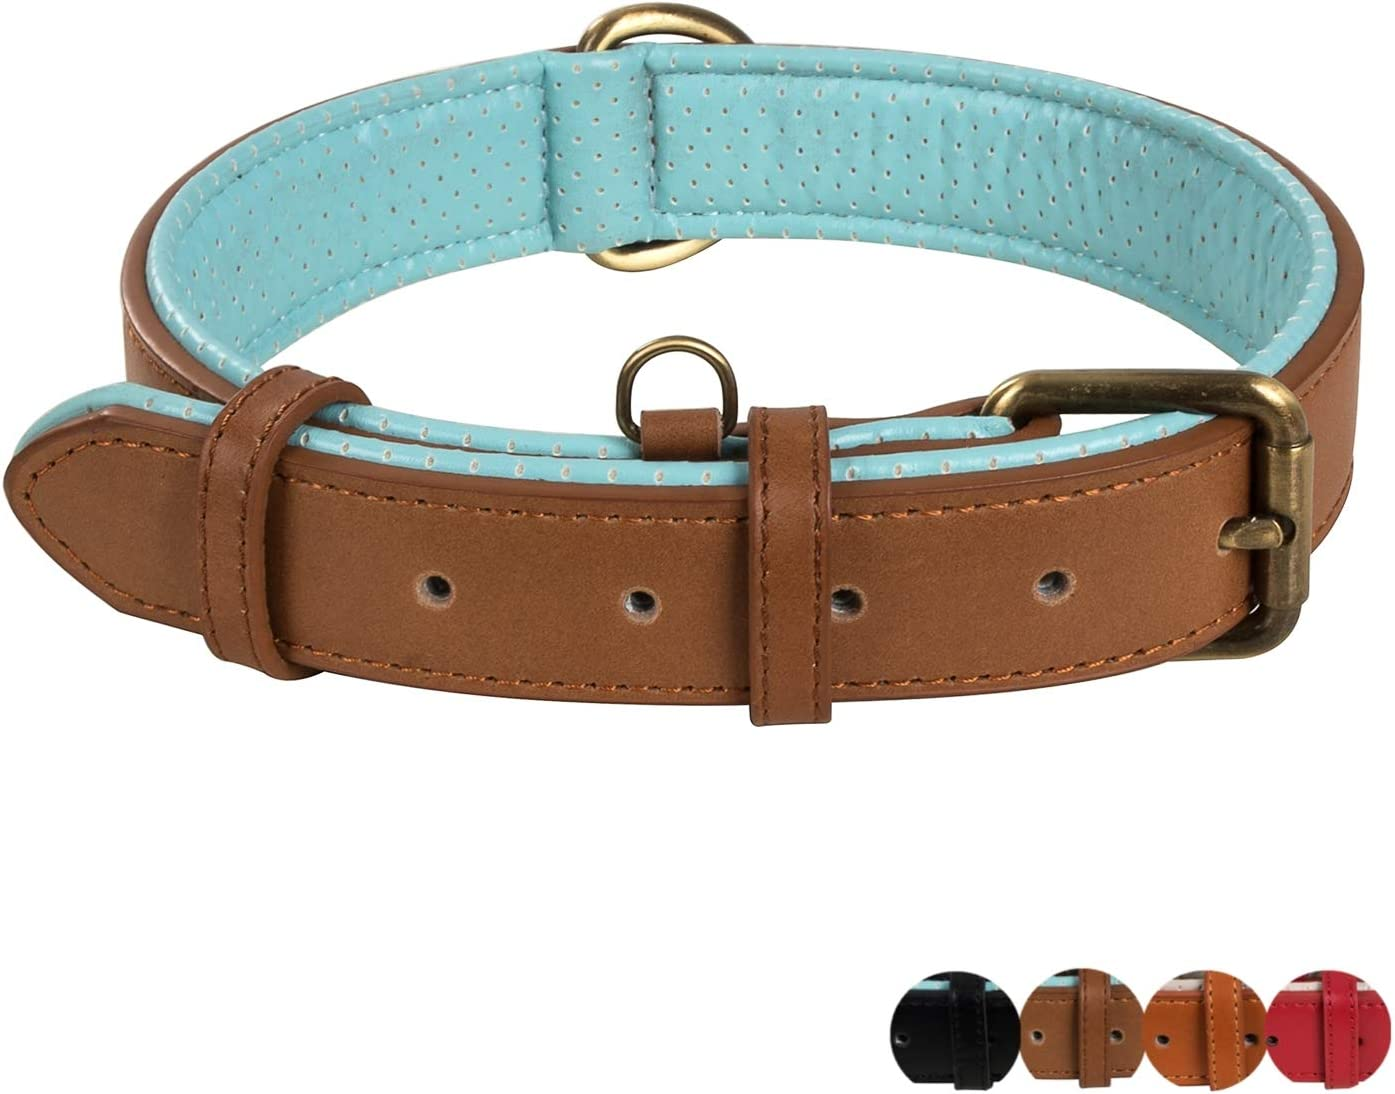 Inexpensive Poohoo Genuine Leather Dog Collar Soft Met Super special price Padded Breathable